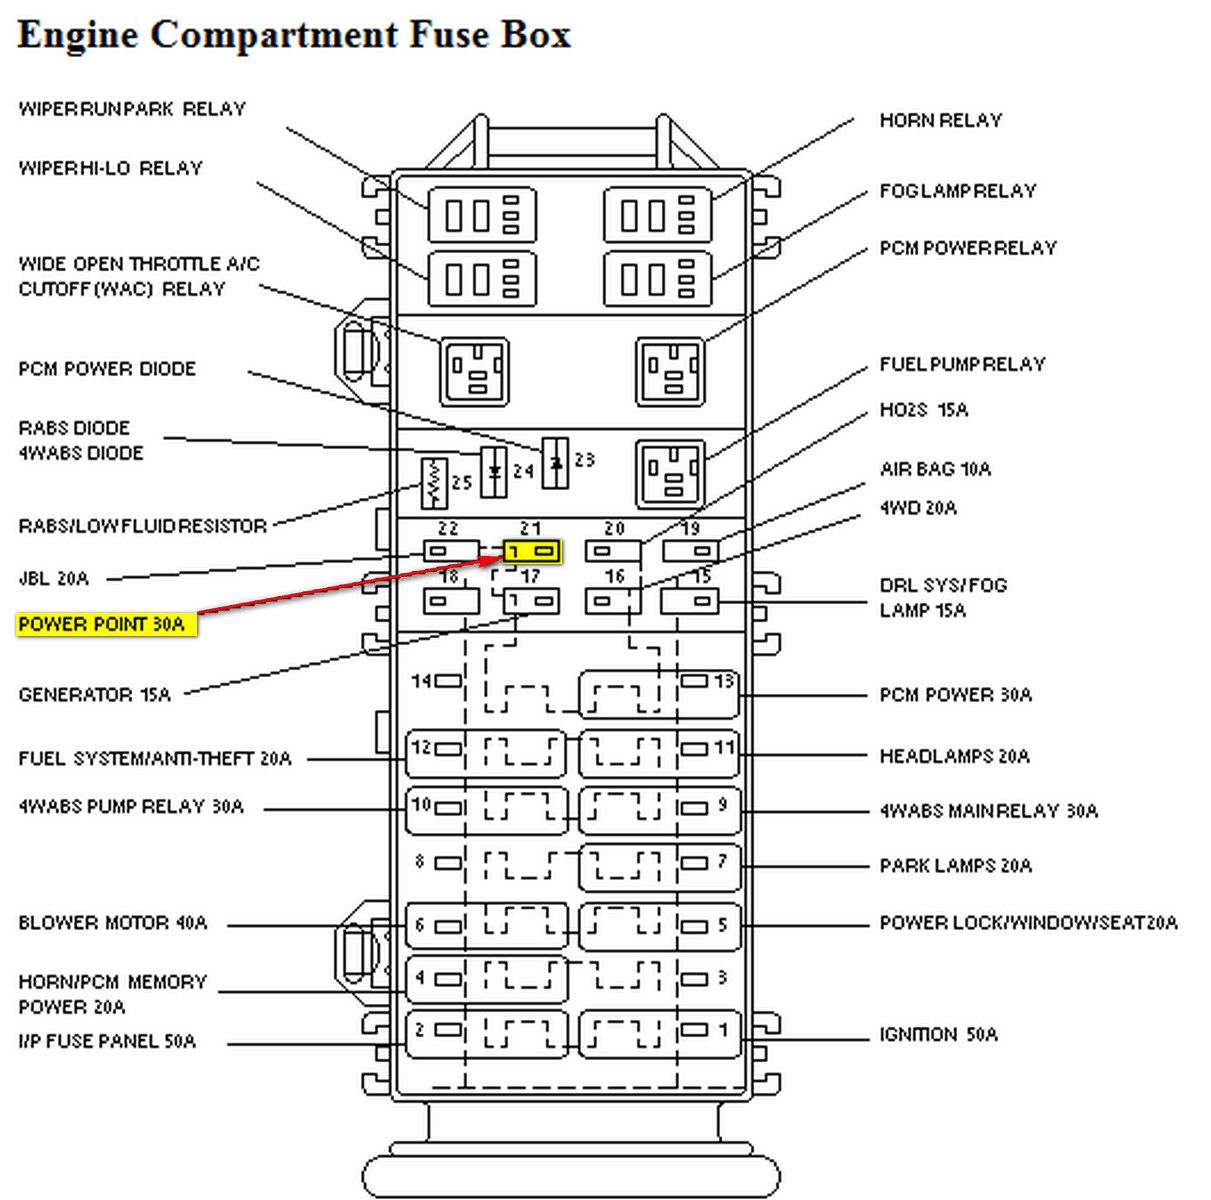 8a55967da7ae1bd251b795845886bd24 2002 ford ranger fuse diagram 1997 ford ranger fuse box diagram 2012 ford edge fuse box diagram at reclaimingppi.co